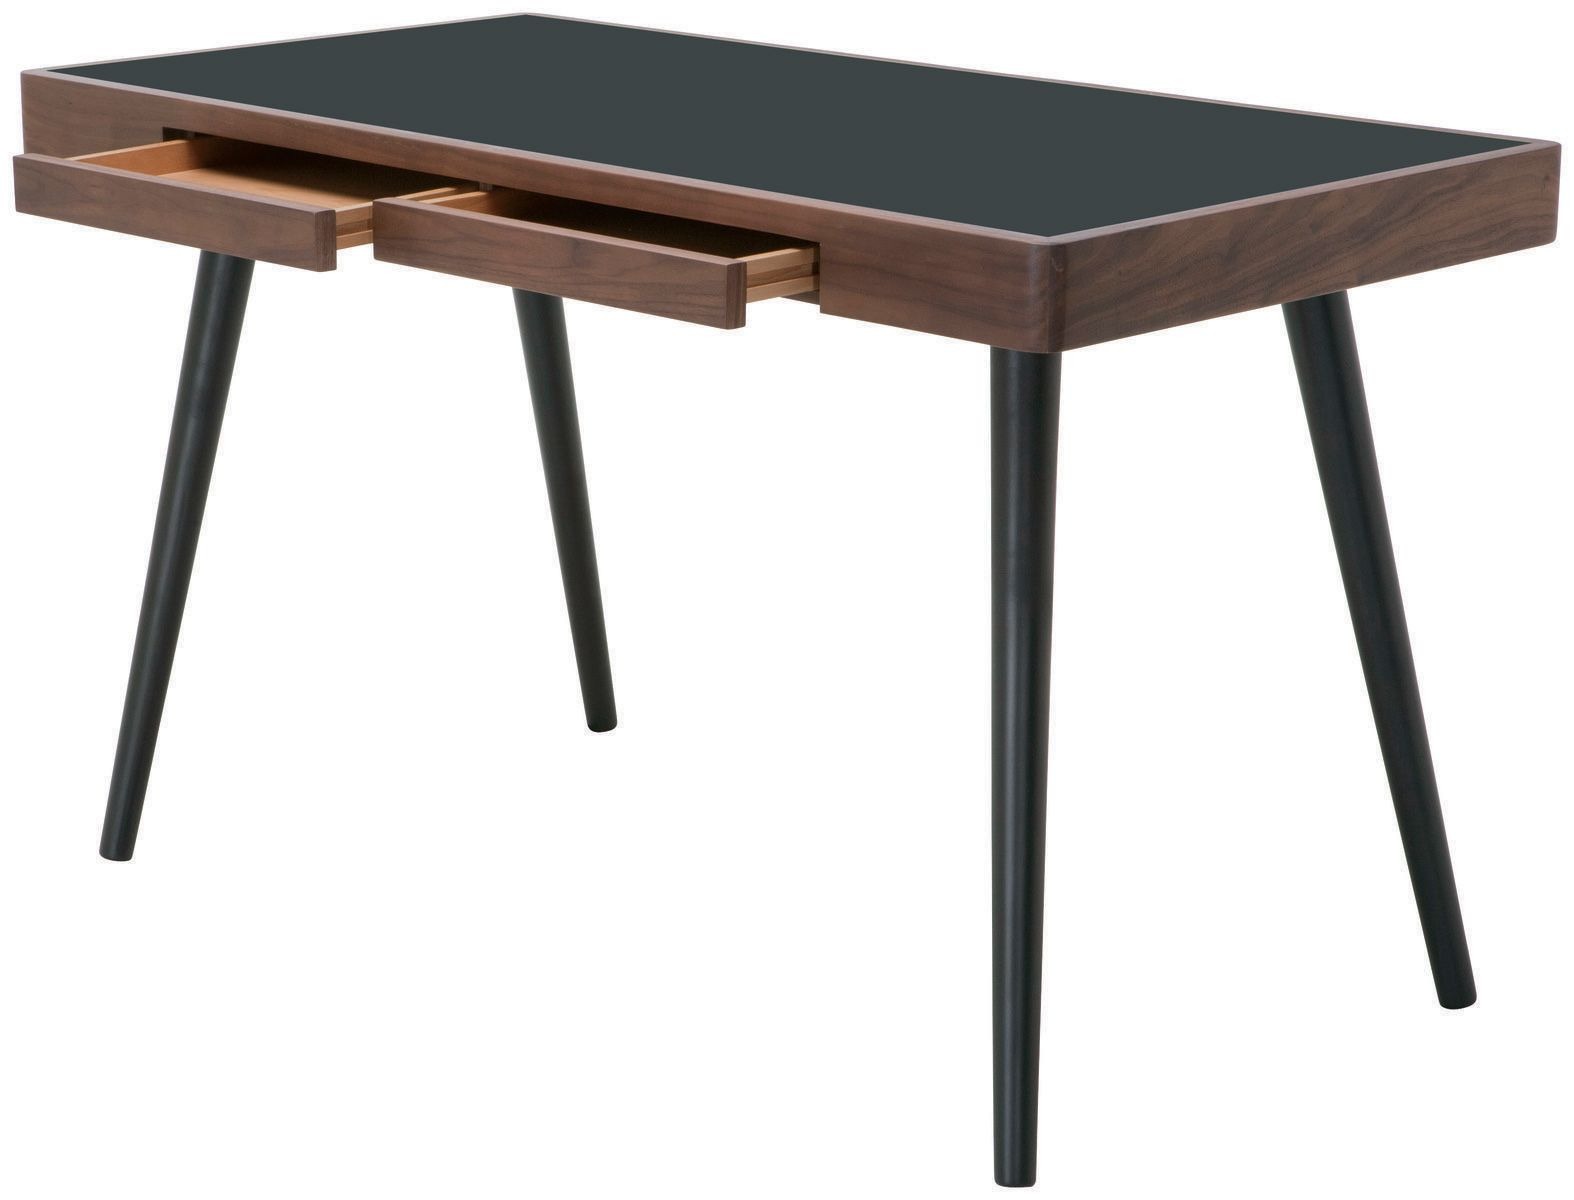 99 Walnut And Black Desk Expensive Home Office Furniture Check More At Http